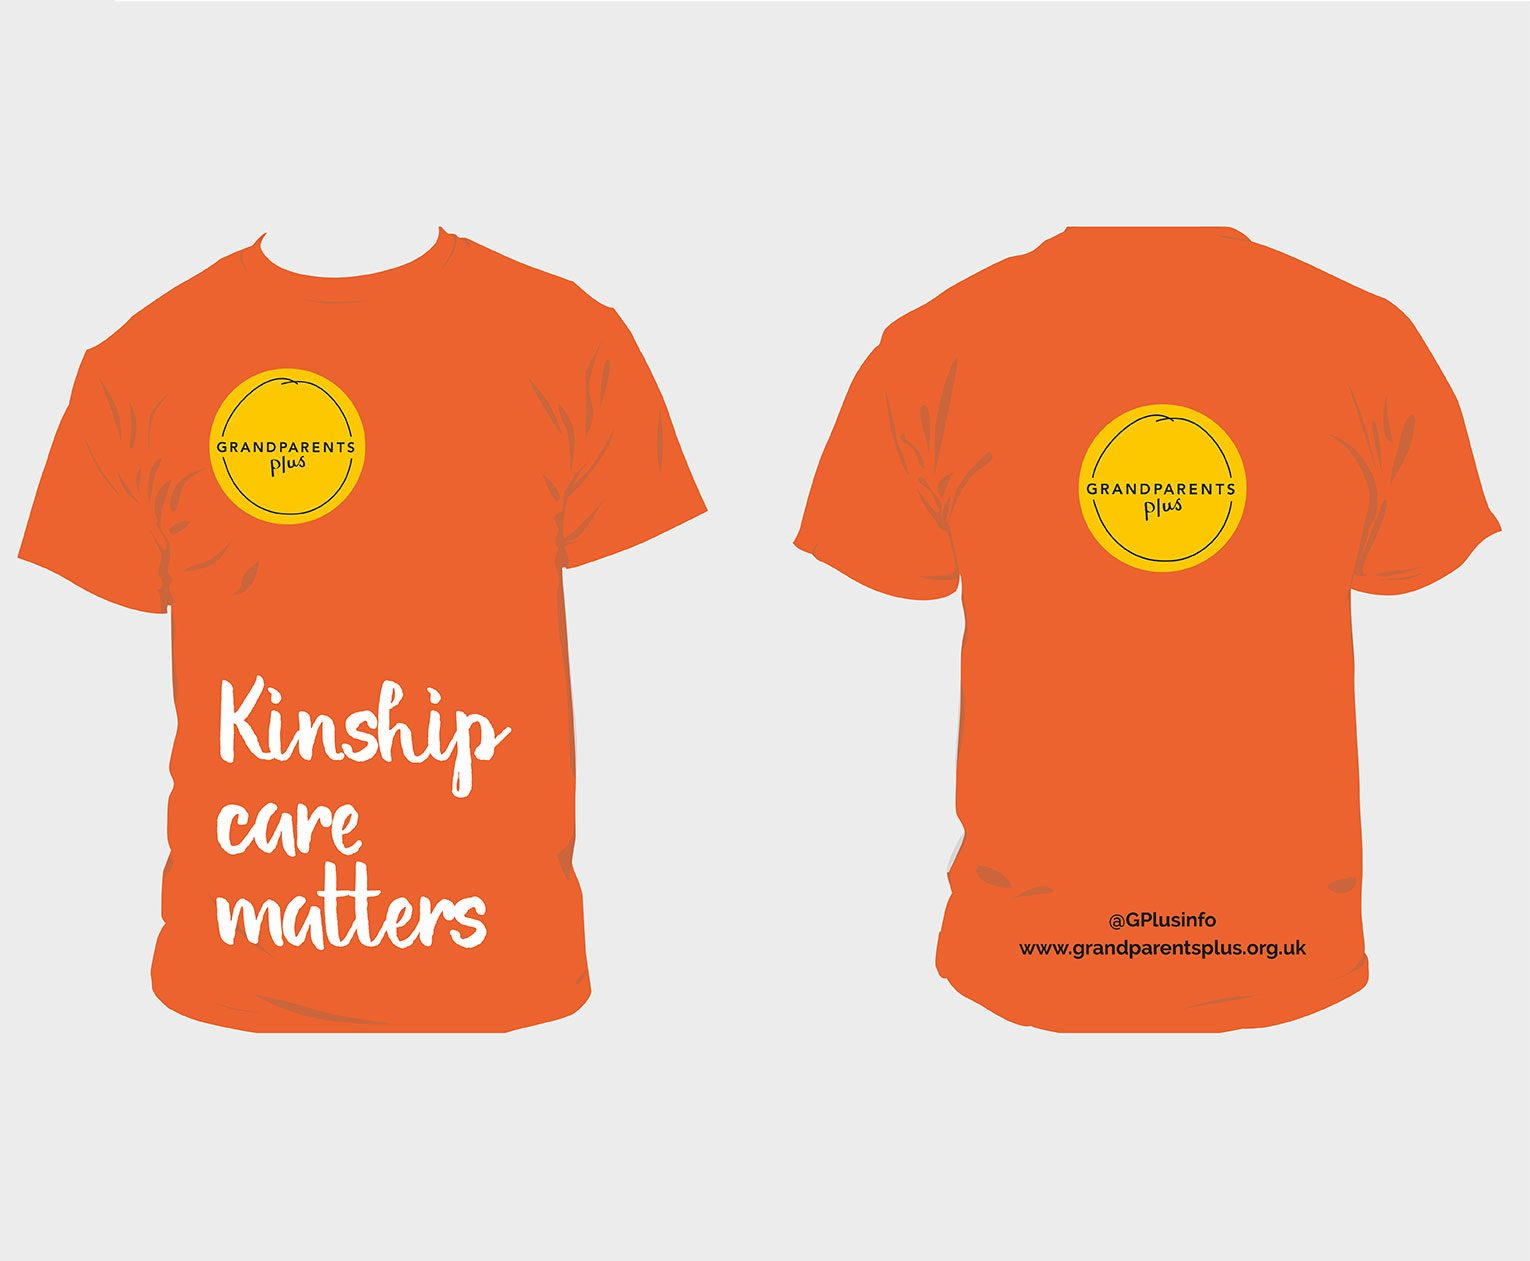 Orange T-shirt with kinship care matters message and Grandparents Plus logo.